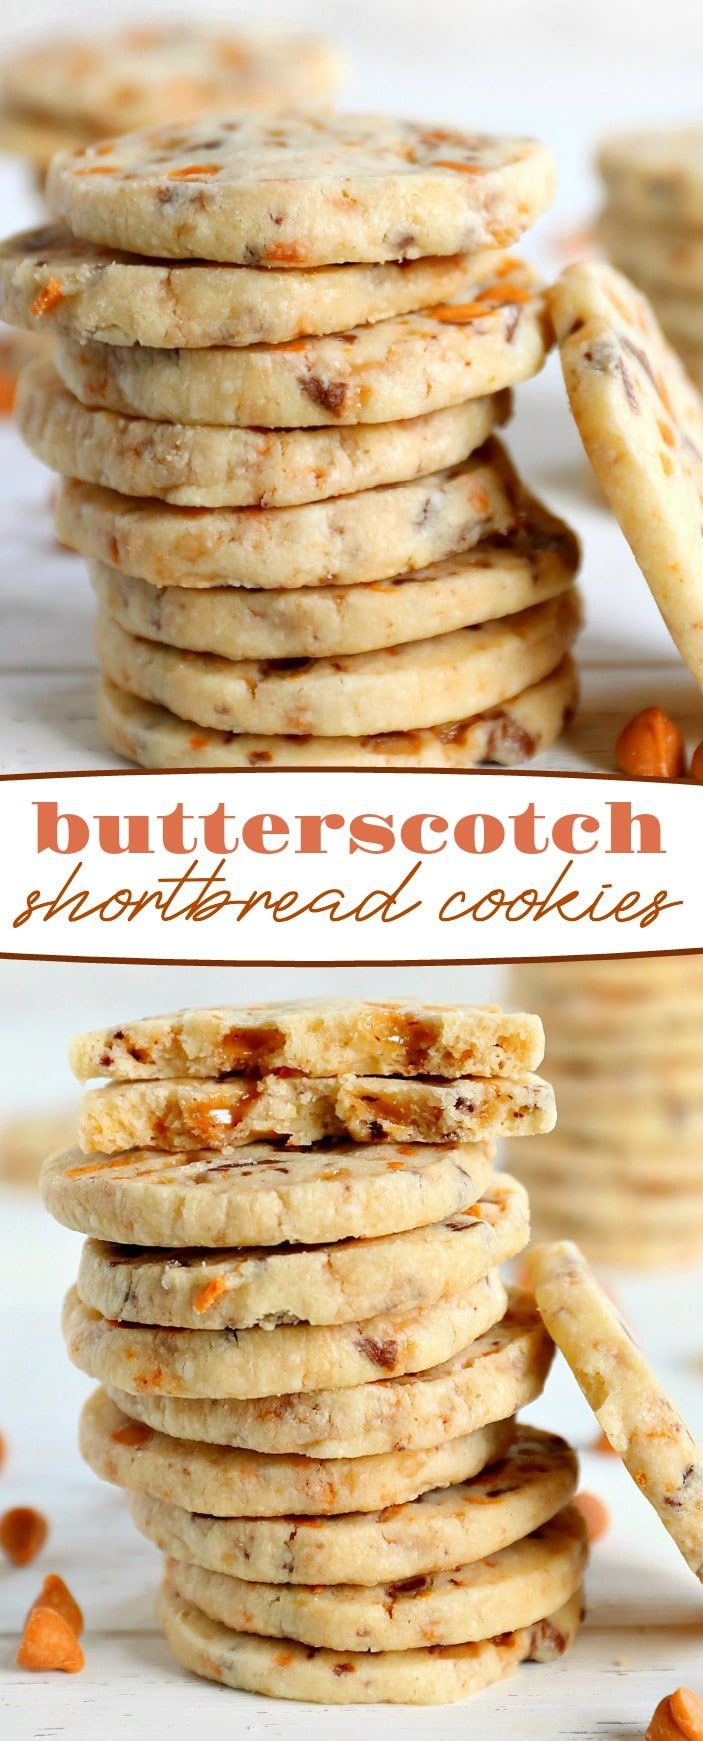 These melt in your mouth Butterscotch Shortbread Cookies are everything shortbre…